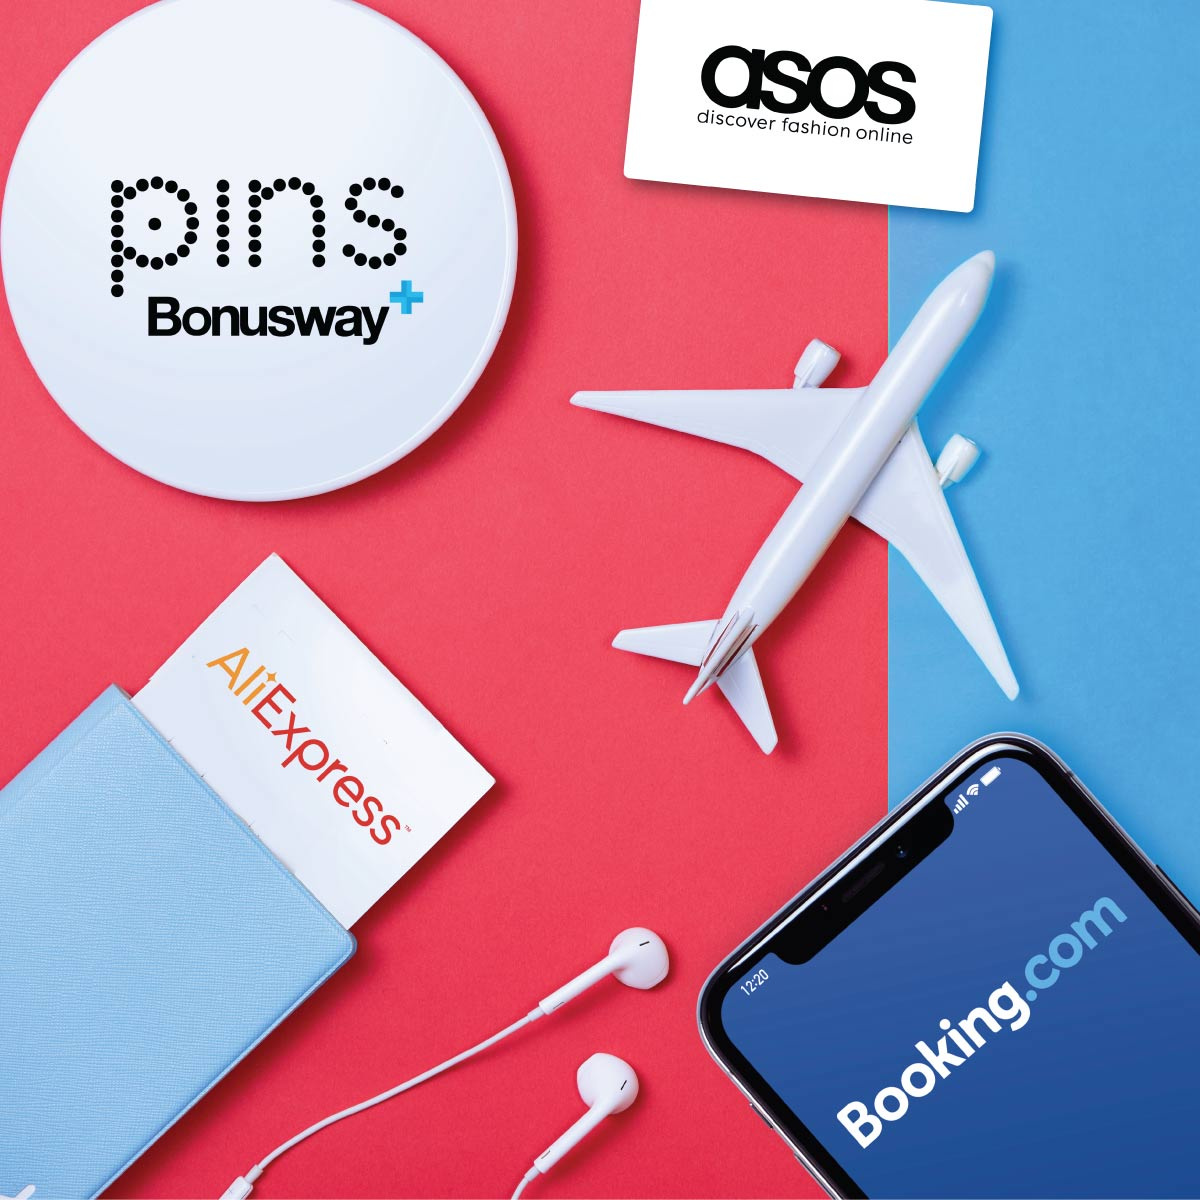 Earn PINS points by shopping online with PINS Bonusway